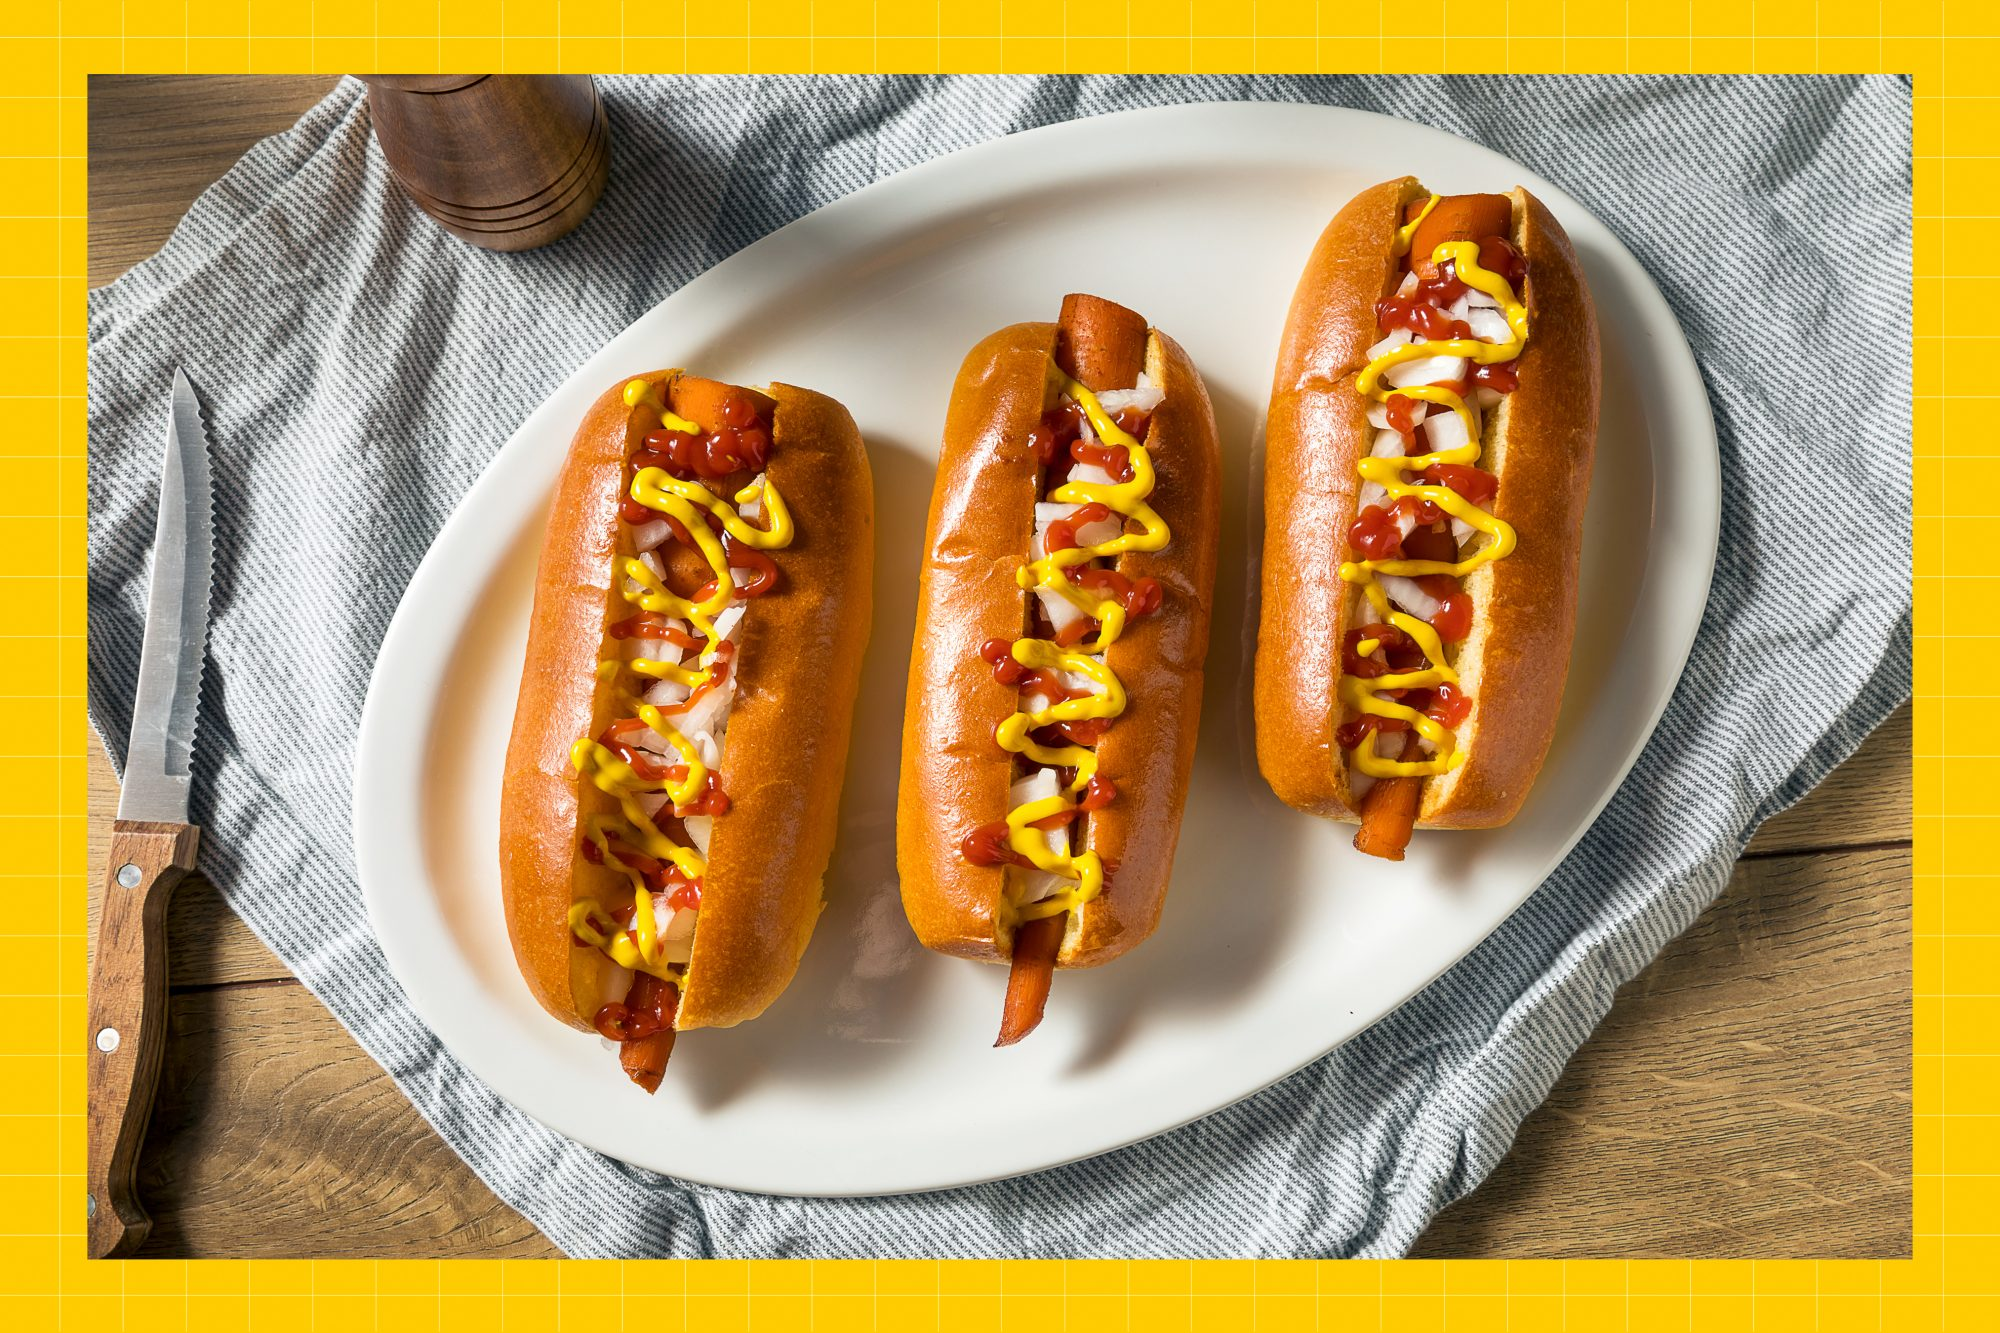 Carrot hotdogs in buns on a white plate with a blue and white dish towel and wood surface